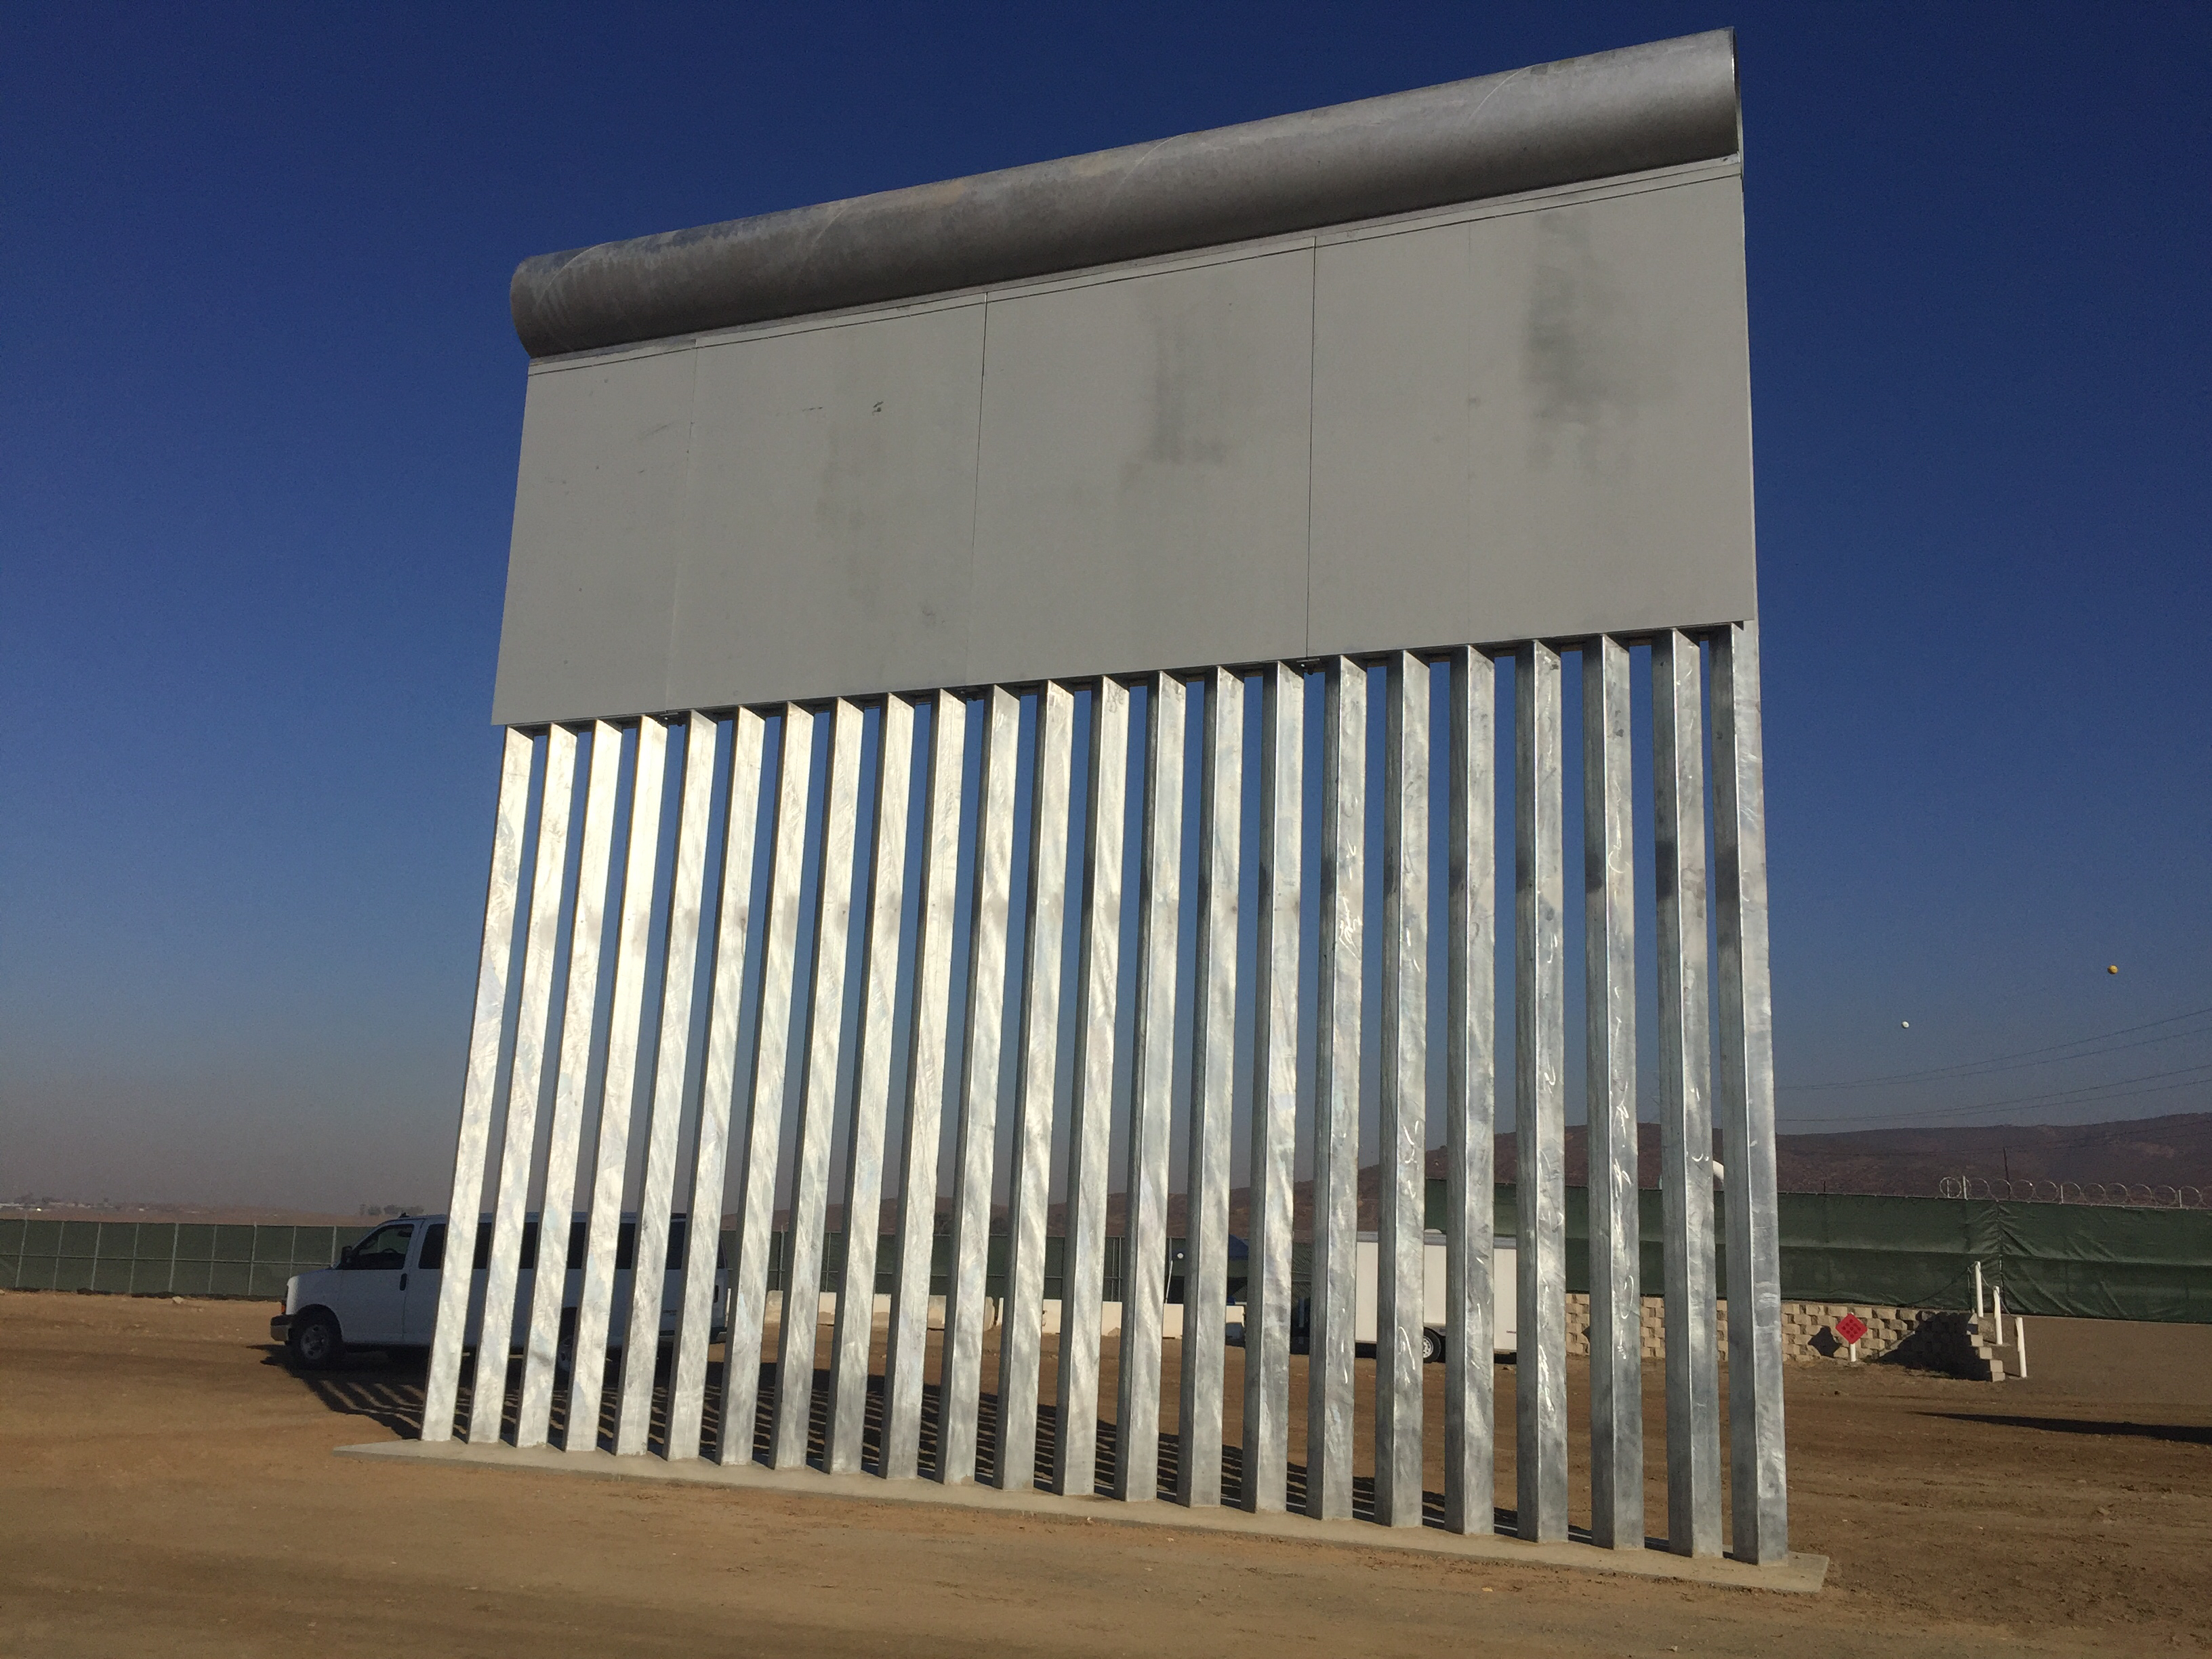 A border wall prototype stands by the U.S.-Mexico border, Oct. 26, 2017. <em>(Elma Gonzalez/KPBS)</em>